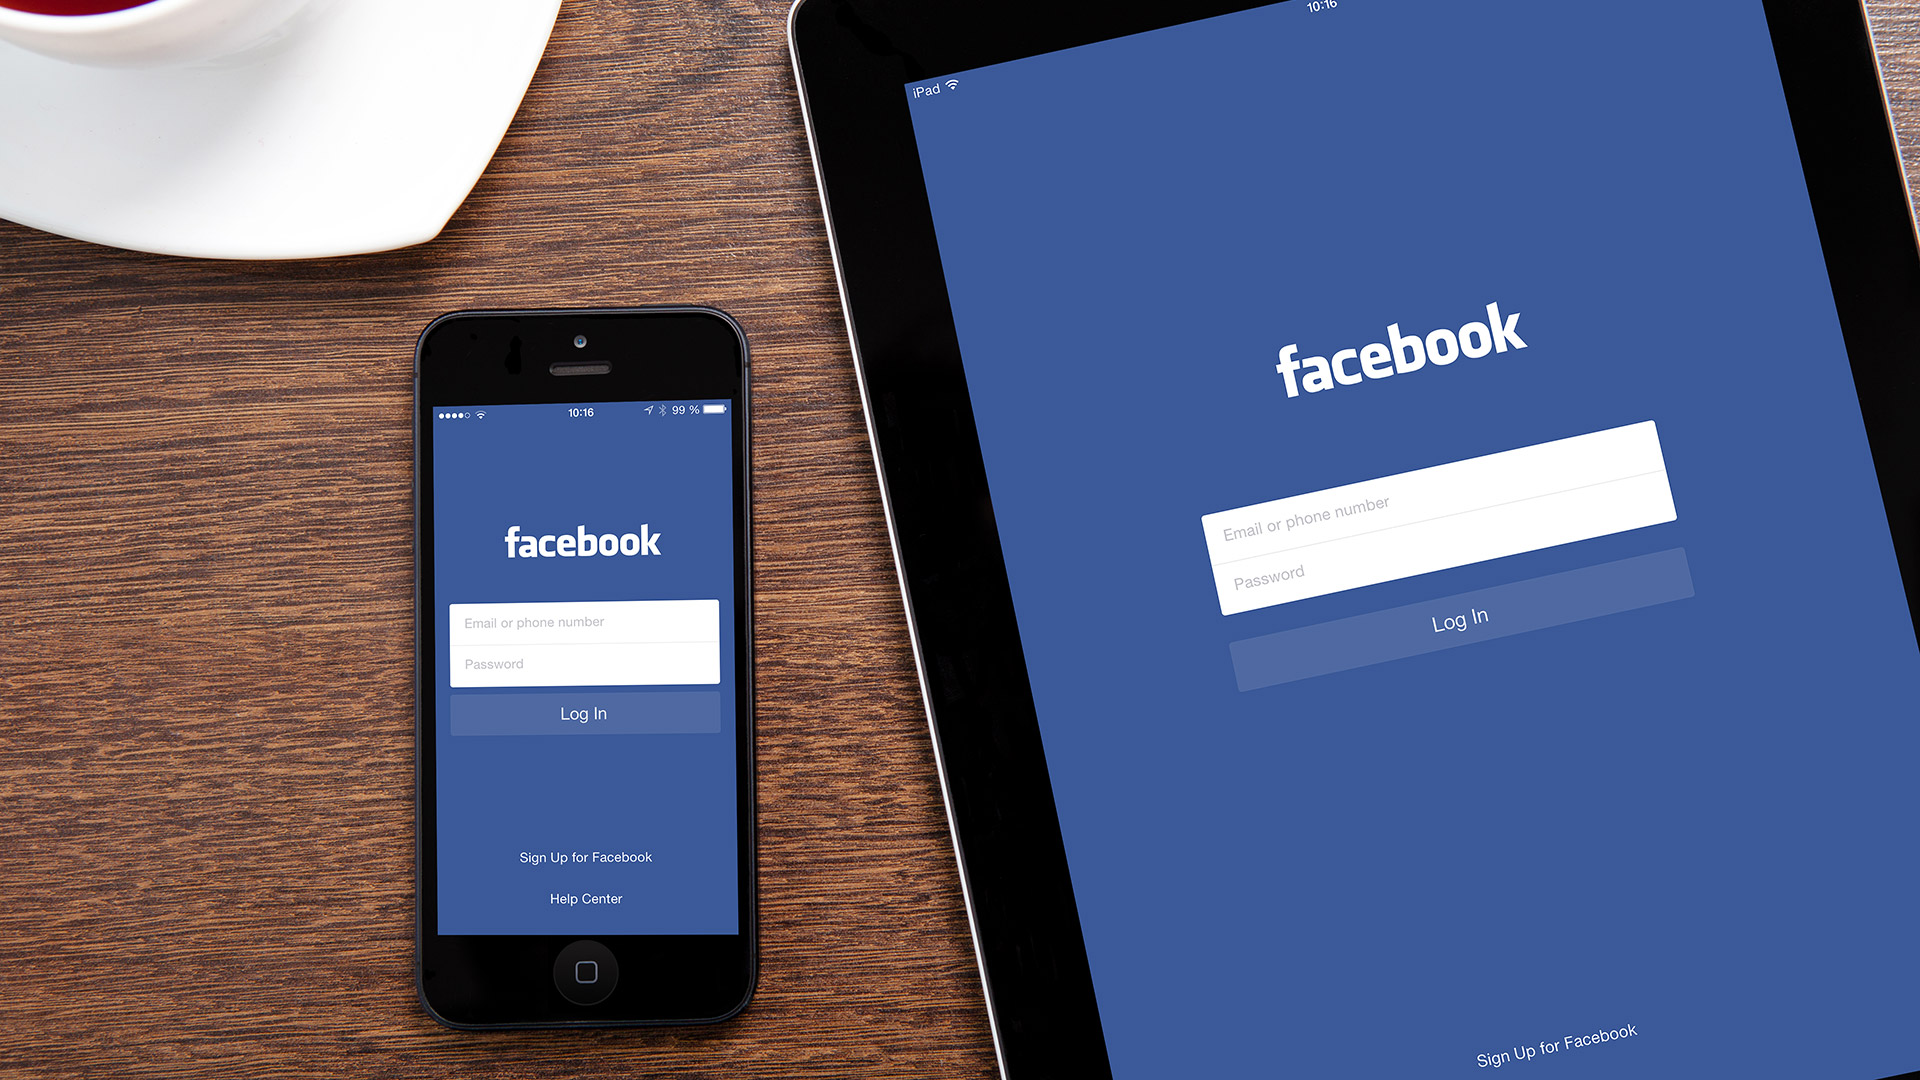 facebook-mobile-apps-ss-1920